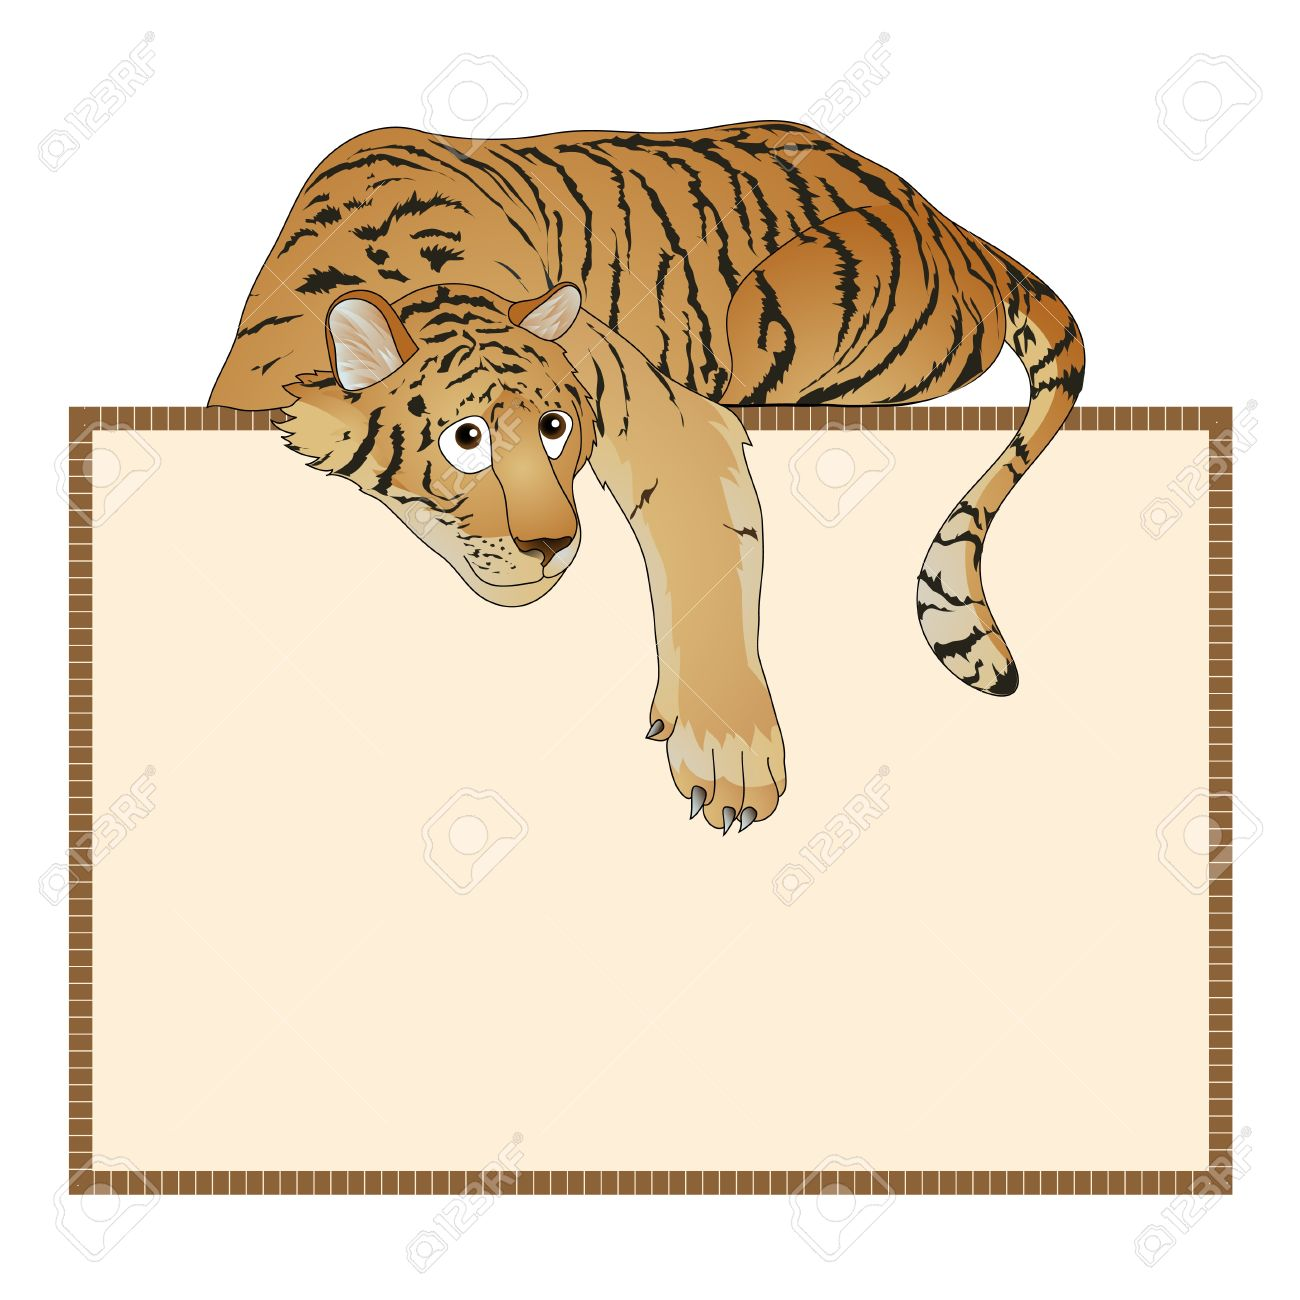 Red Striped Tiger In A Supine Position. Vector Illustration.